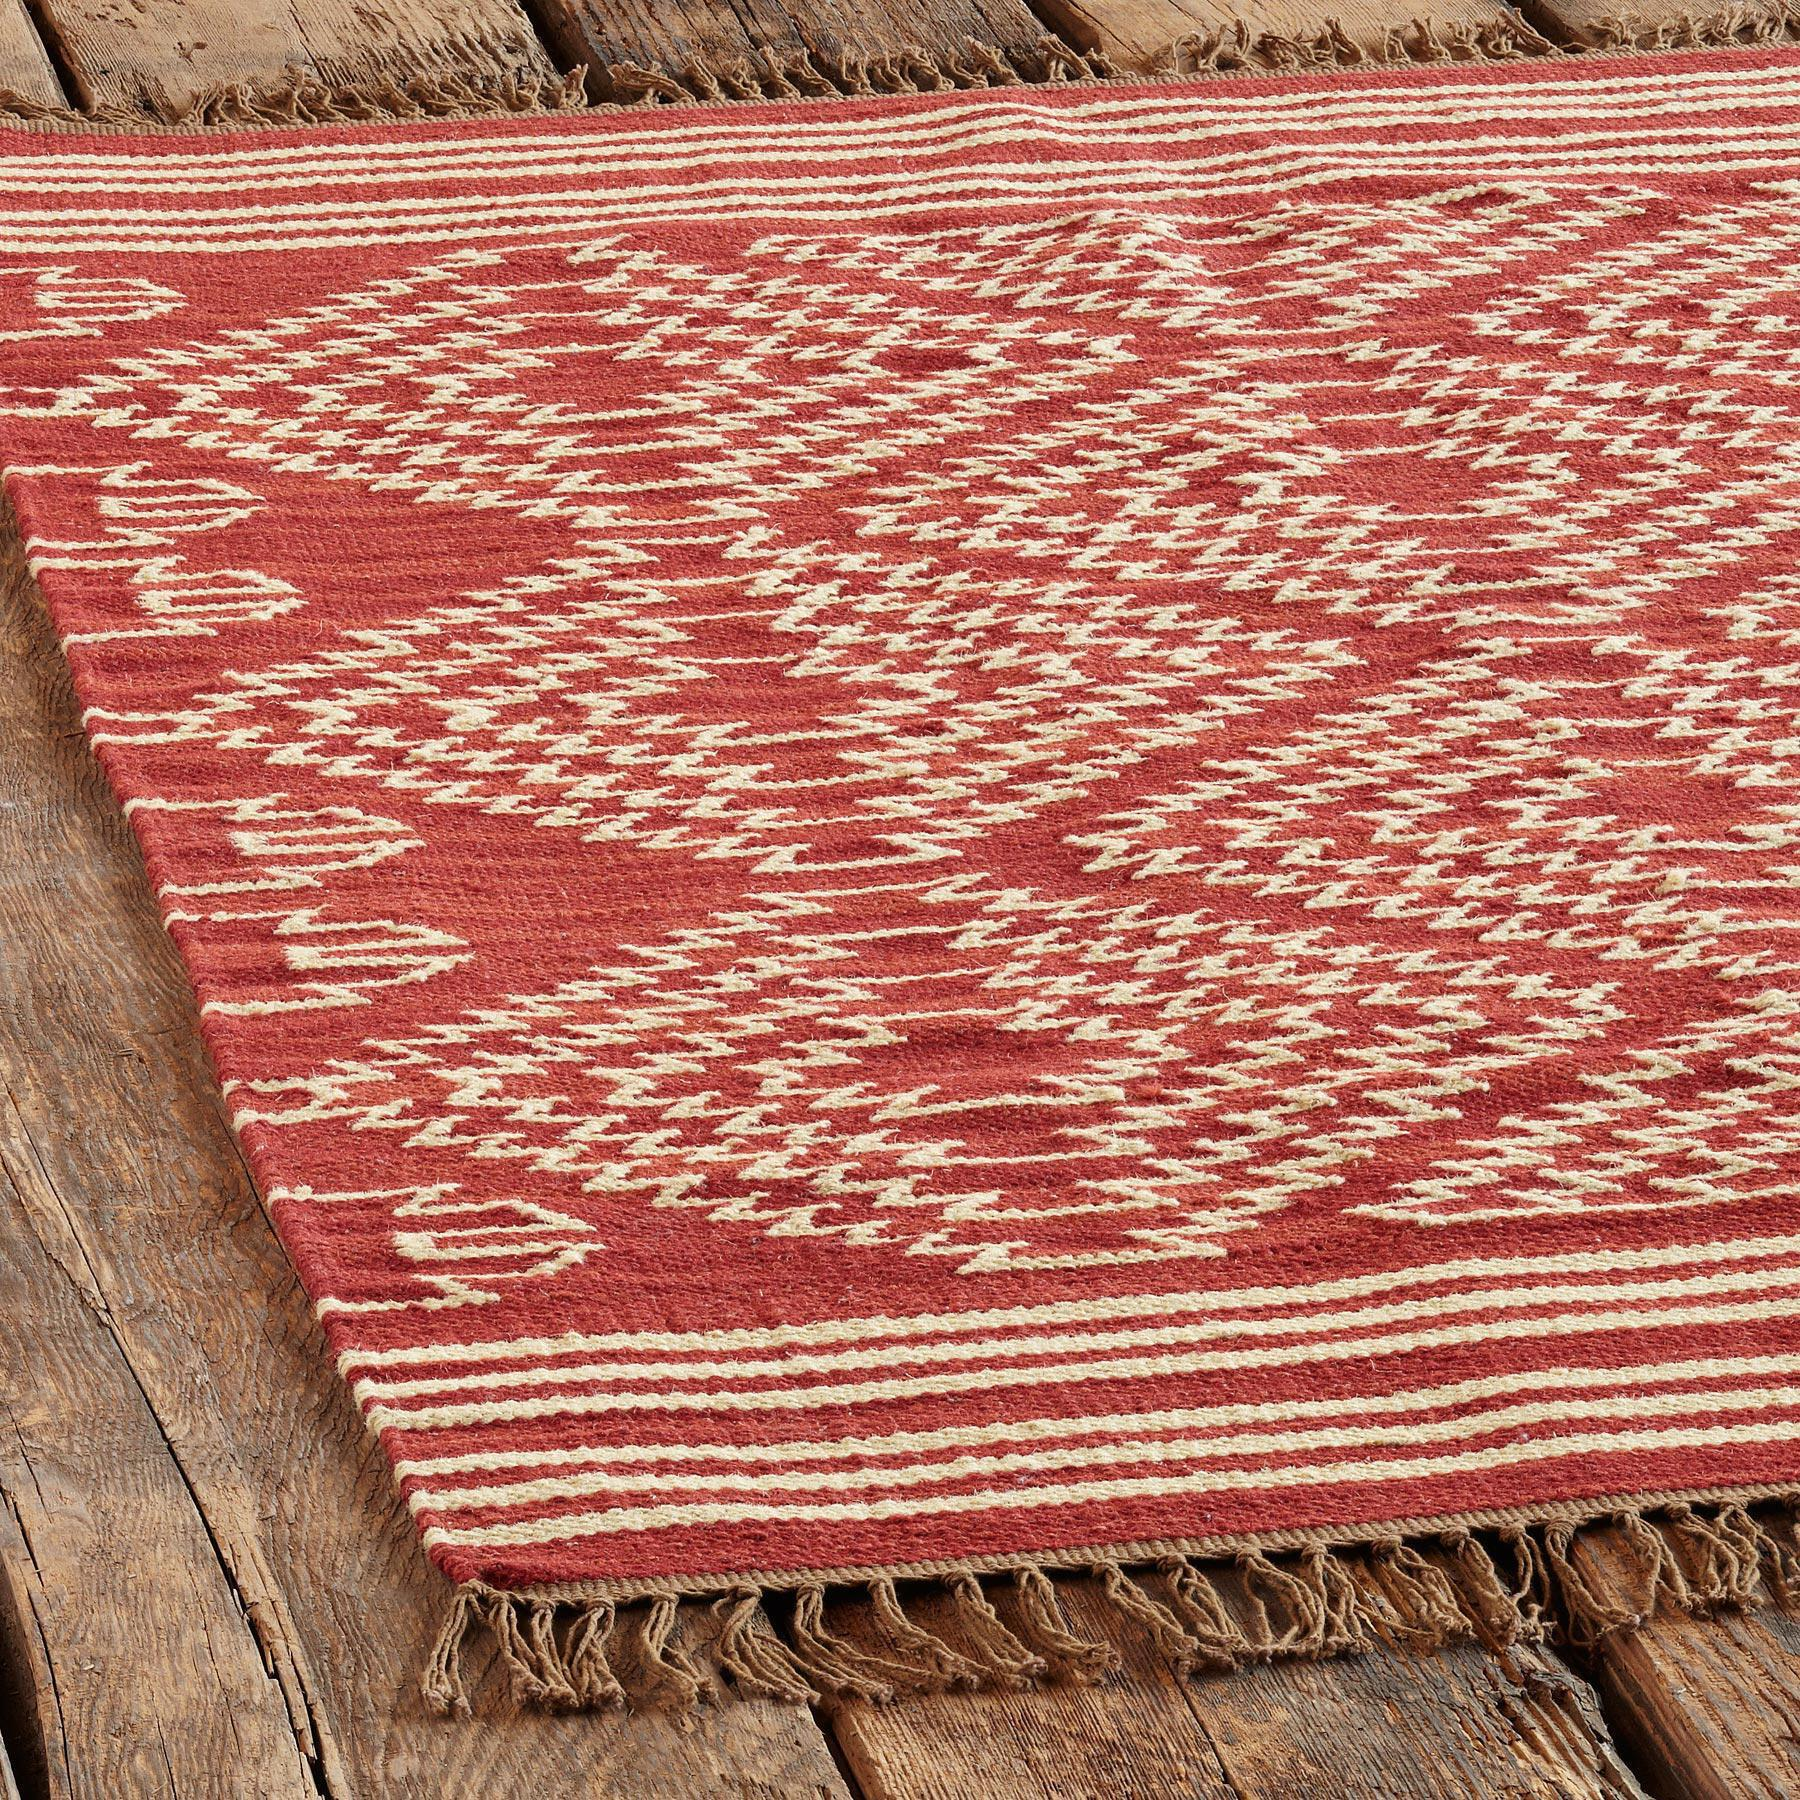 TRIBAL GRAPHIC DHURRIE RUG - LG: View 2